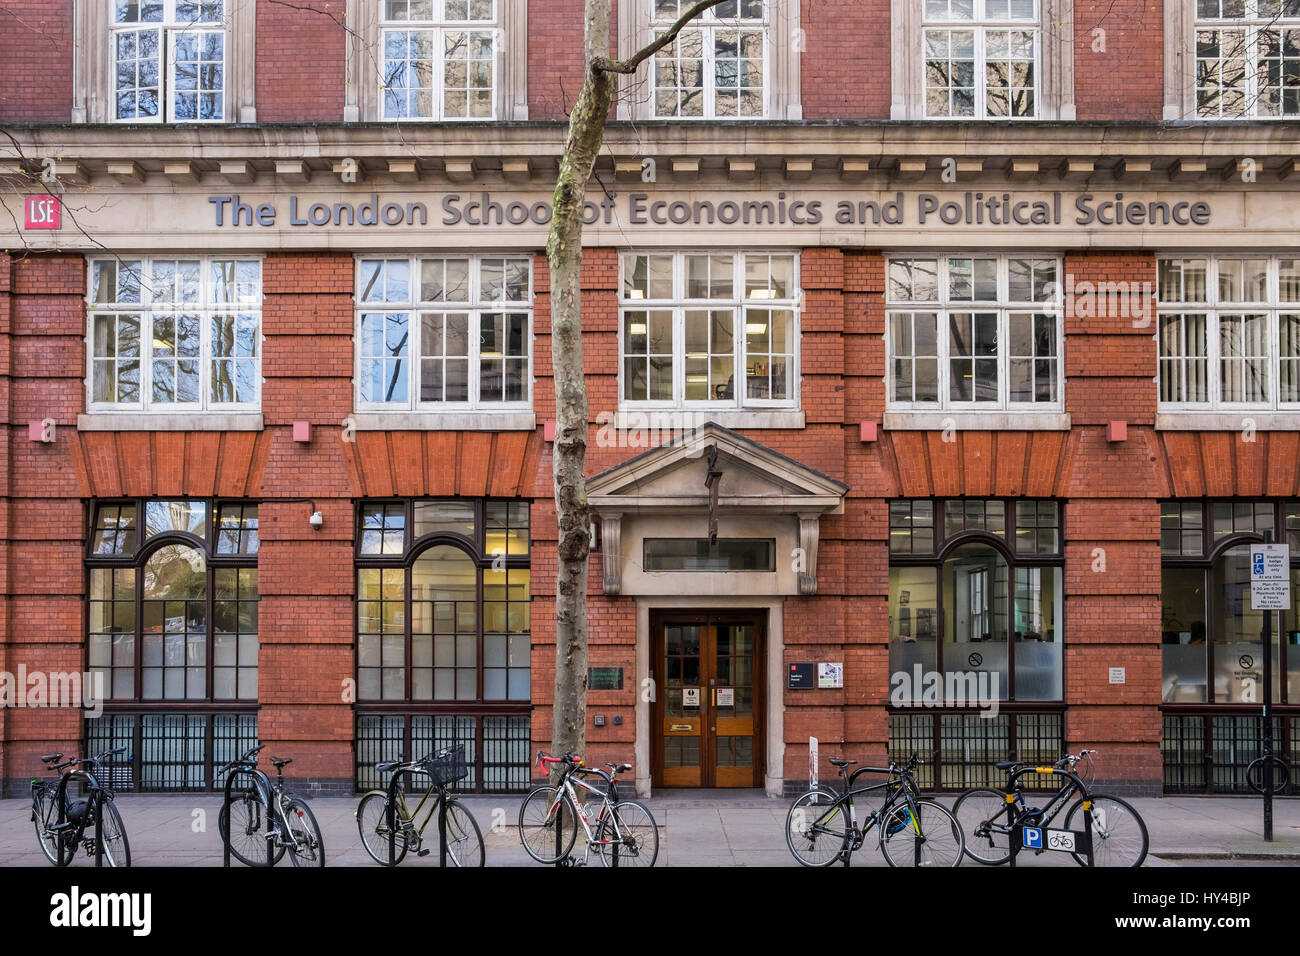 The London School of Economics & Political Science building